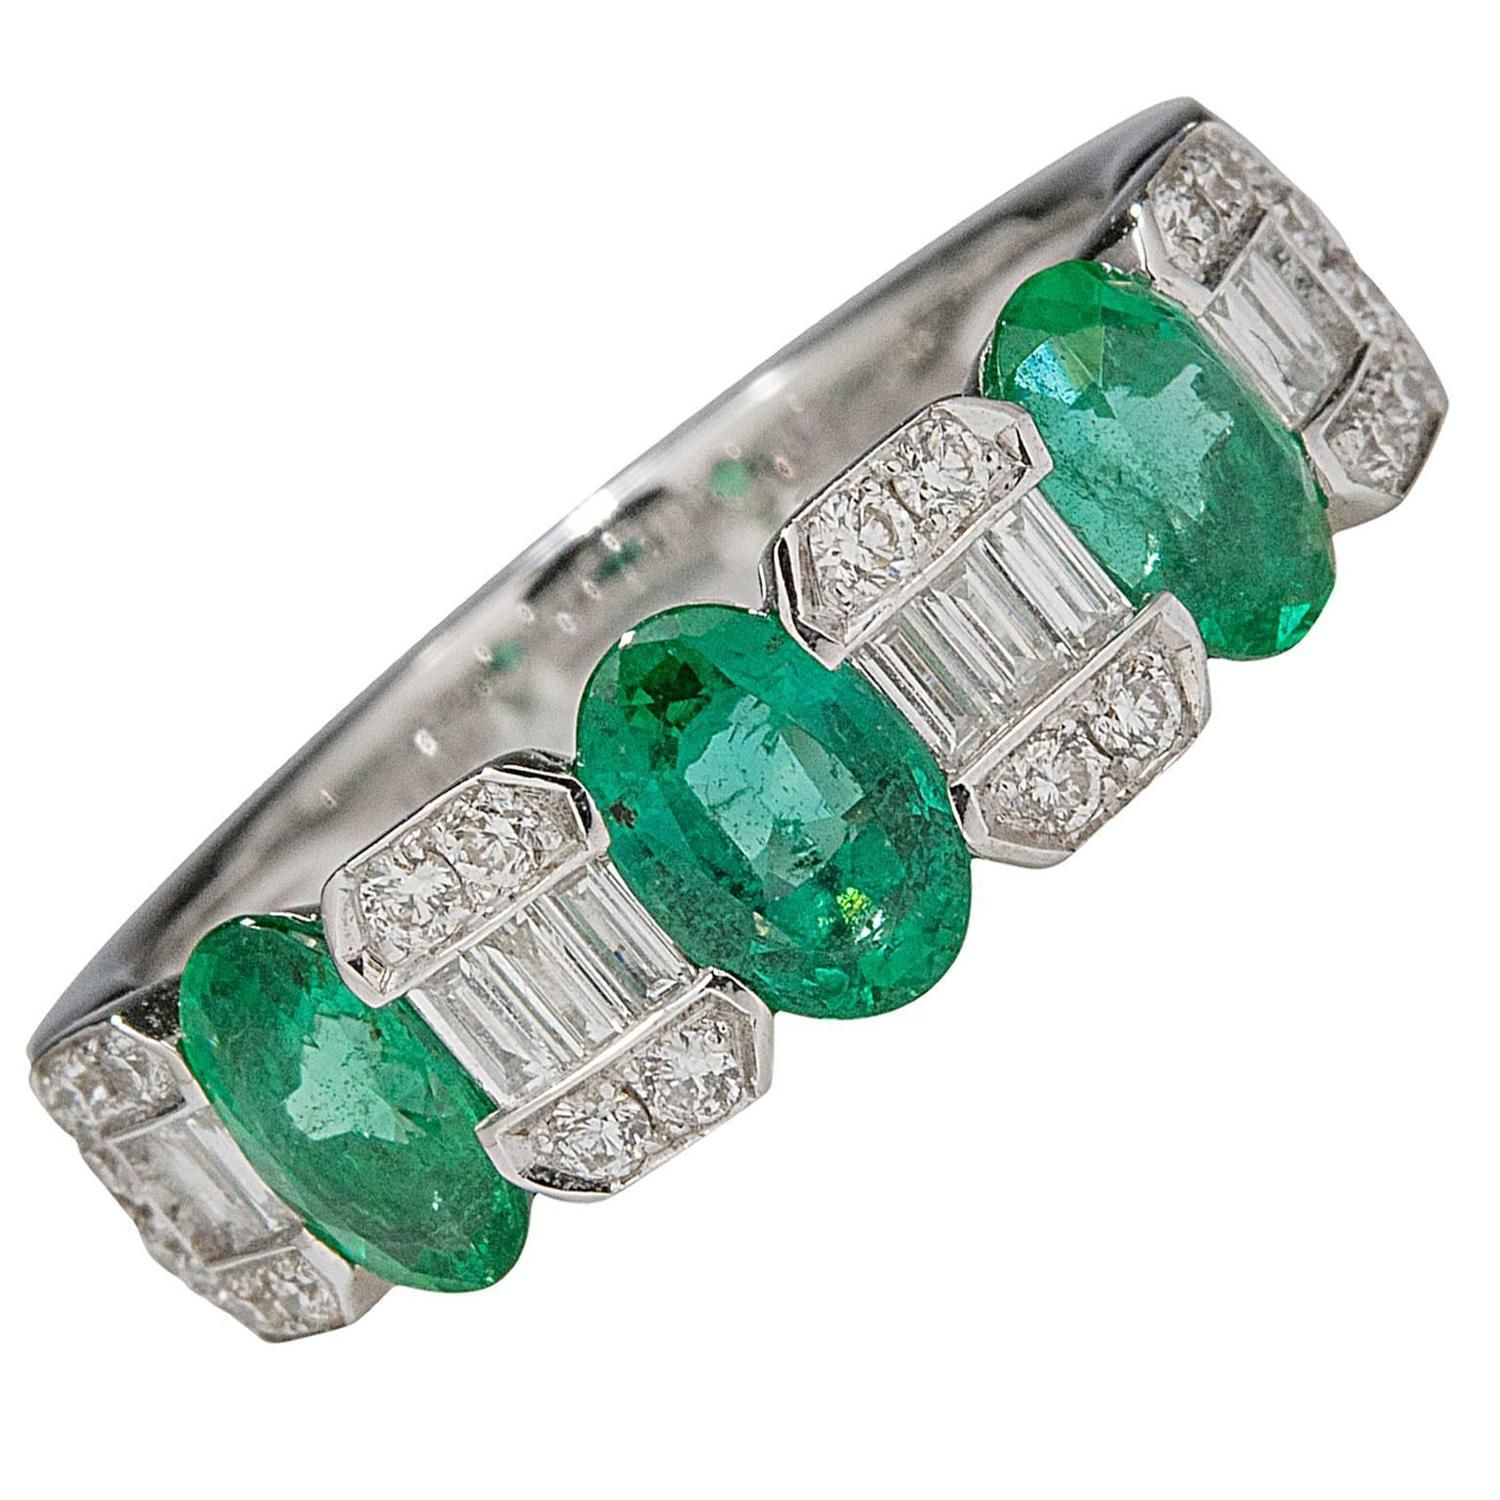 eternity bands band watch diamond emerald cut youtube wedding